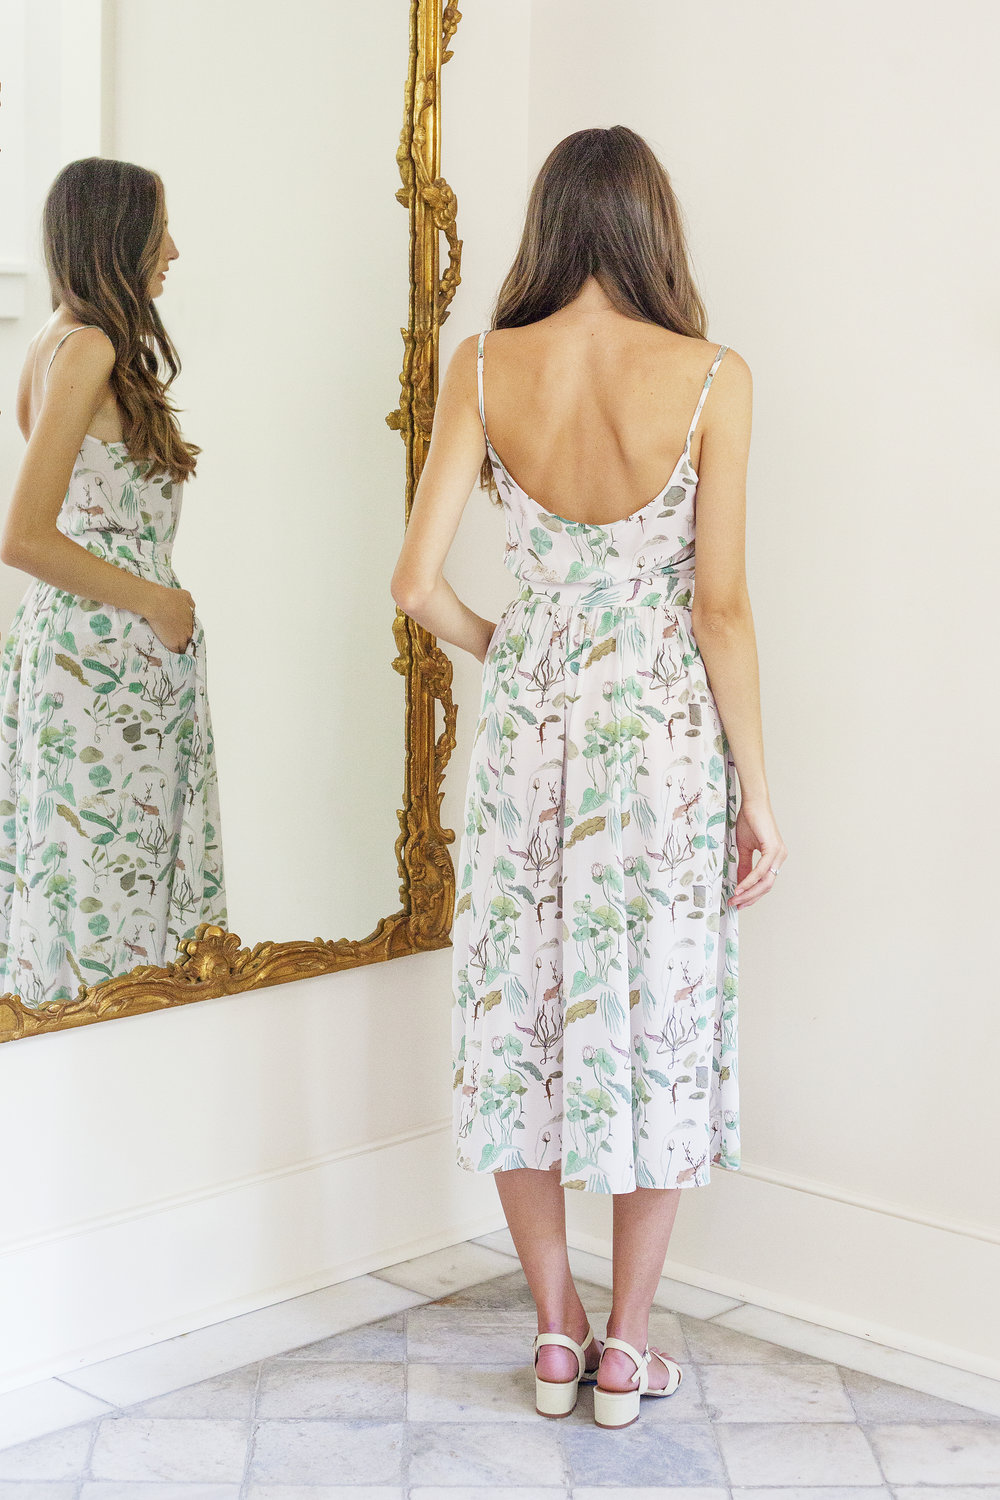 Plante rose skirt in lily pad print garmentory